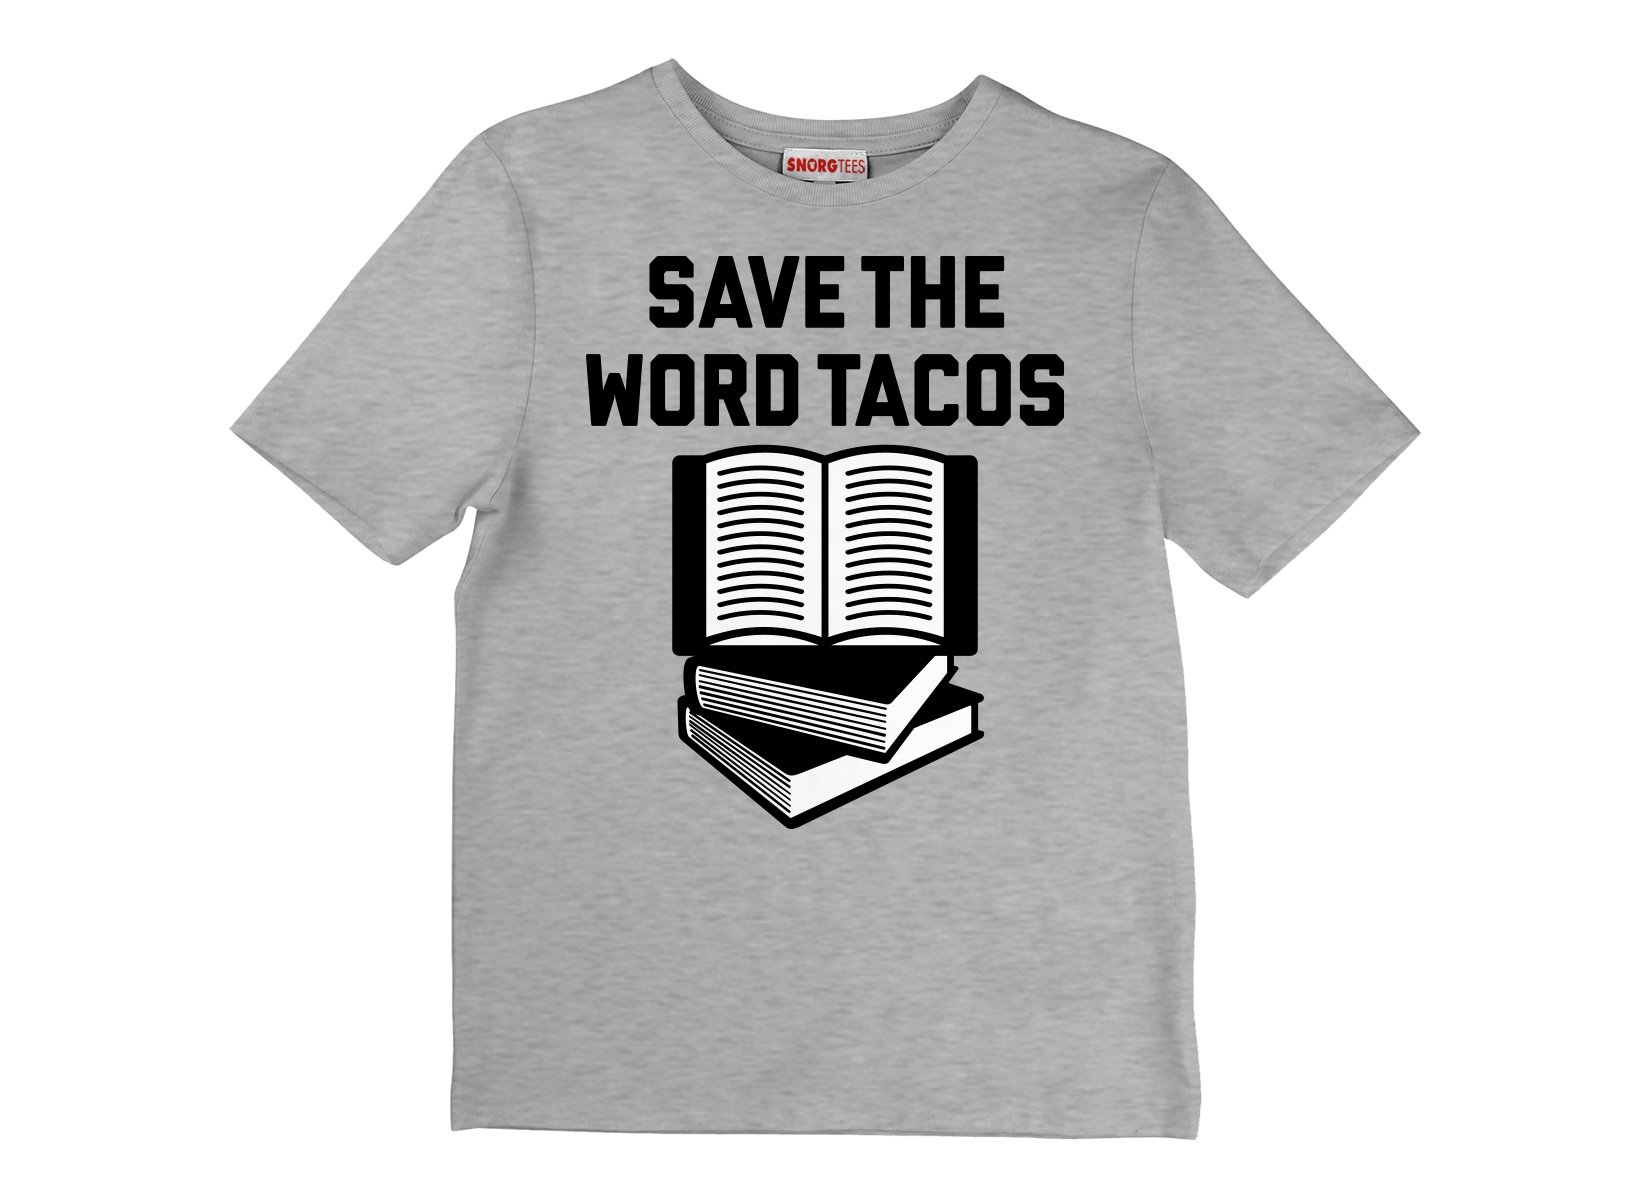 Save The Word Tacos on Kids T-Shirt